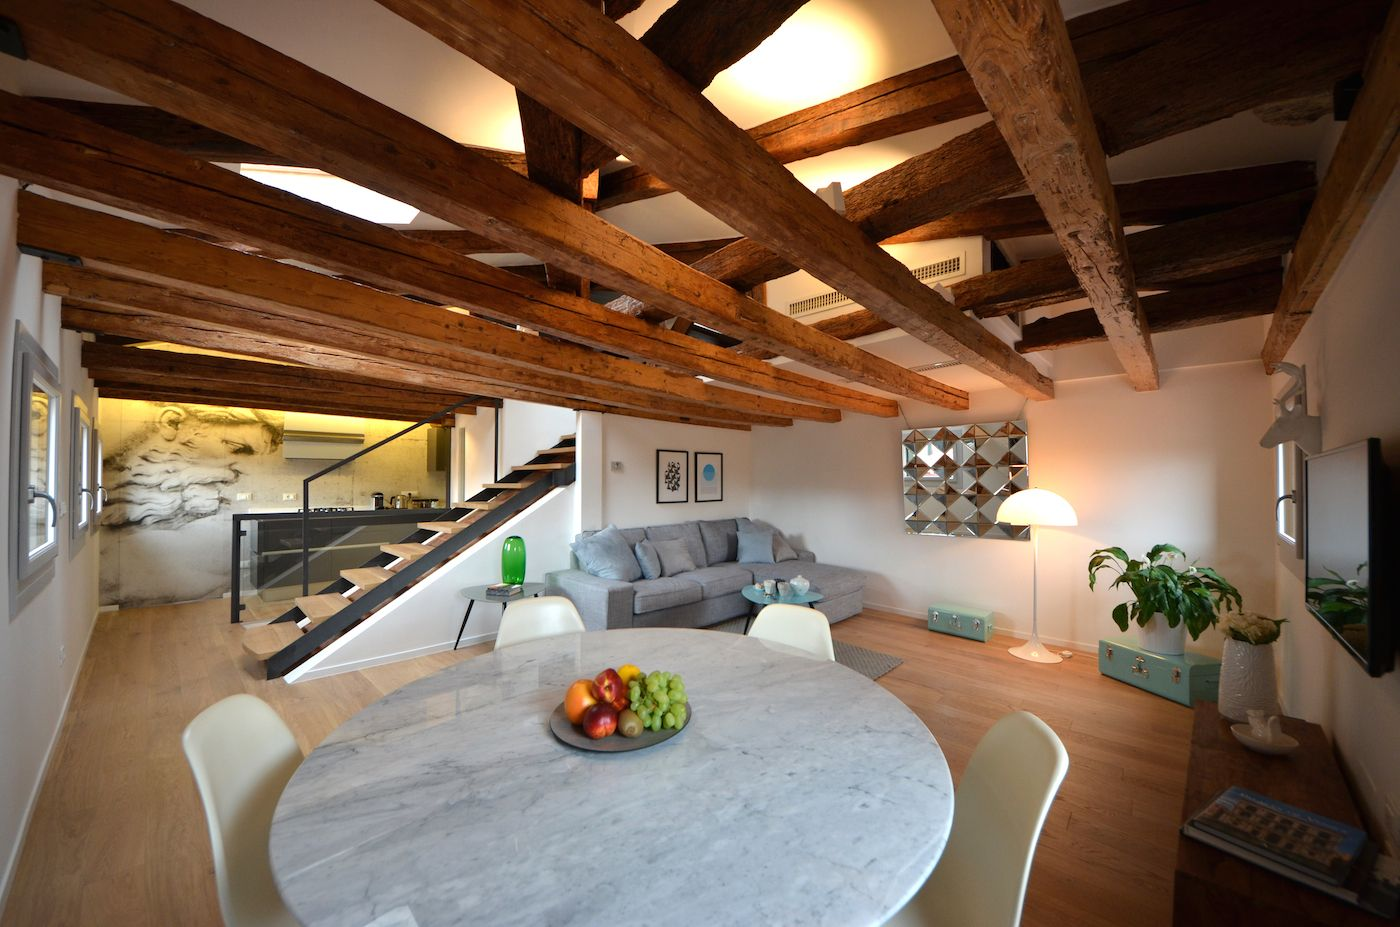 antique features and modern furniture blend in the Sagredo apartment